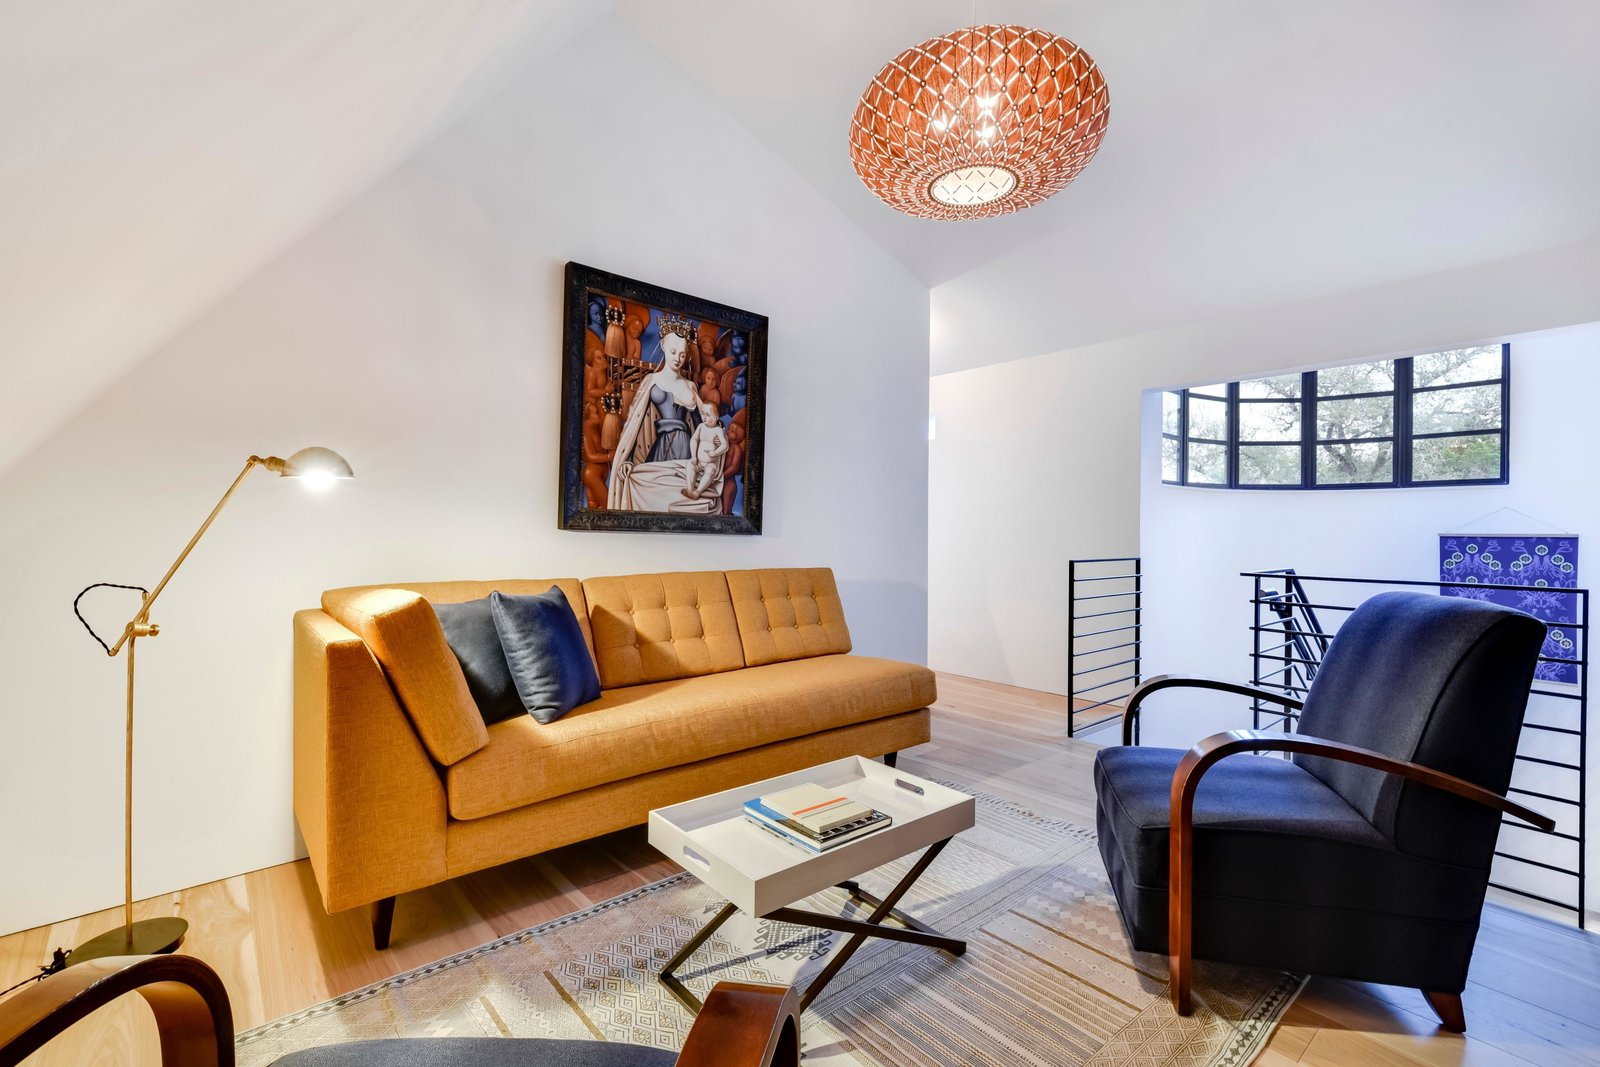 Living Room, Sofa, Chair, Medium Hardwood Floor, Pendant Lighting, Floor Lighting, Rug Floor, and Coffee Tables Designed for maximum flexibility, each of the rooms is capable of multiple uses.  Photo 11 of 22 in Own This Alluring Sculptural Abode in Austin For $3.1M